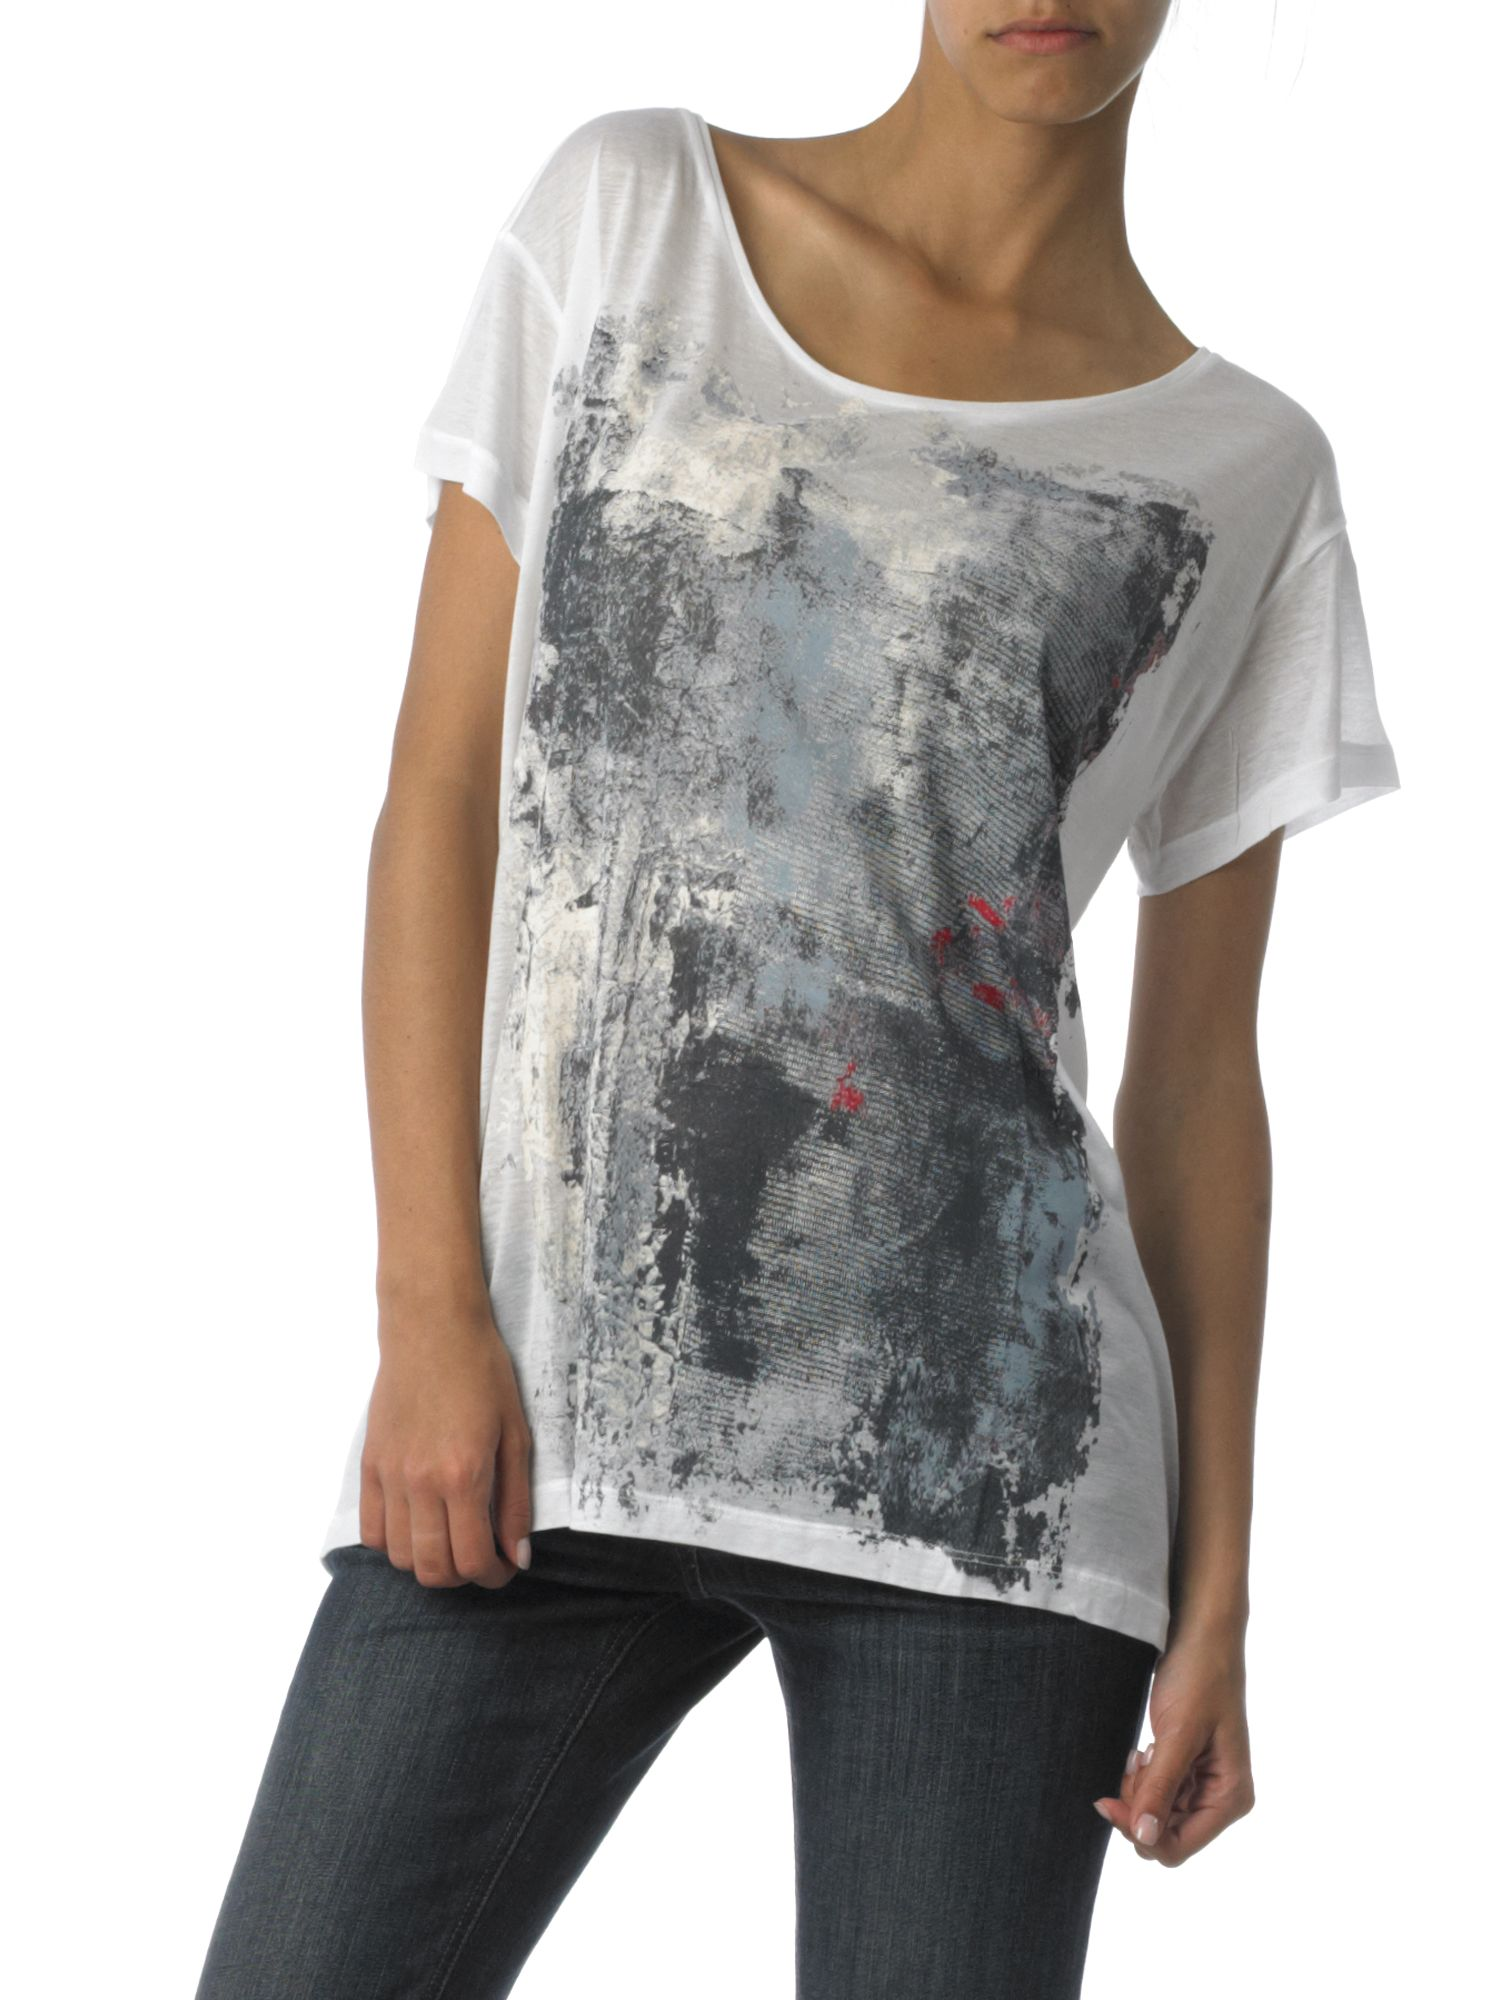 Selected oversized tee product image